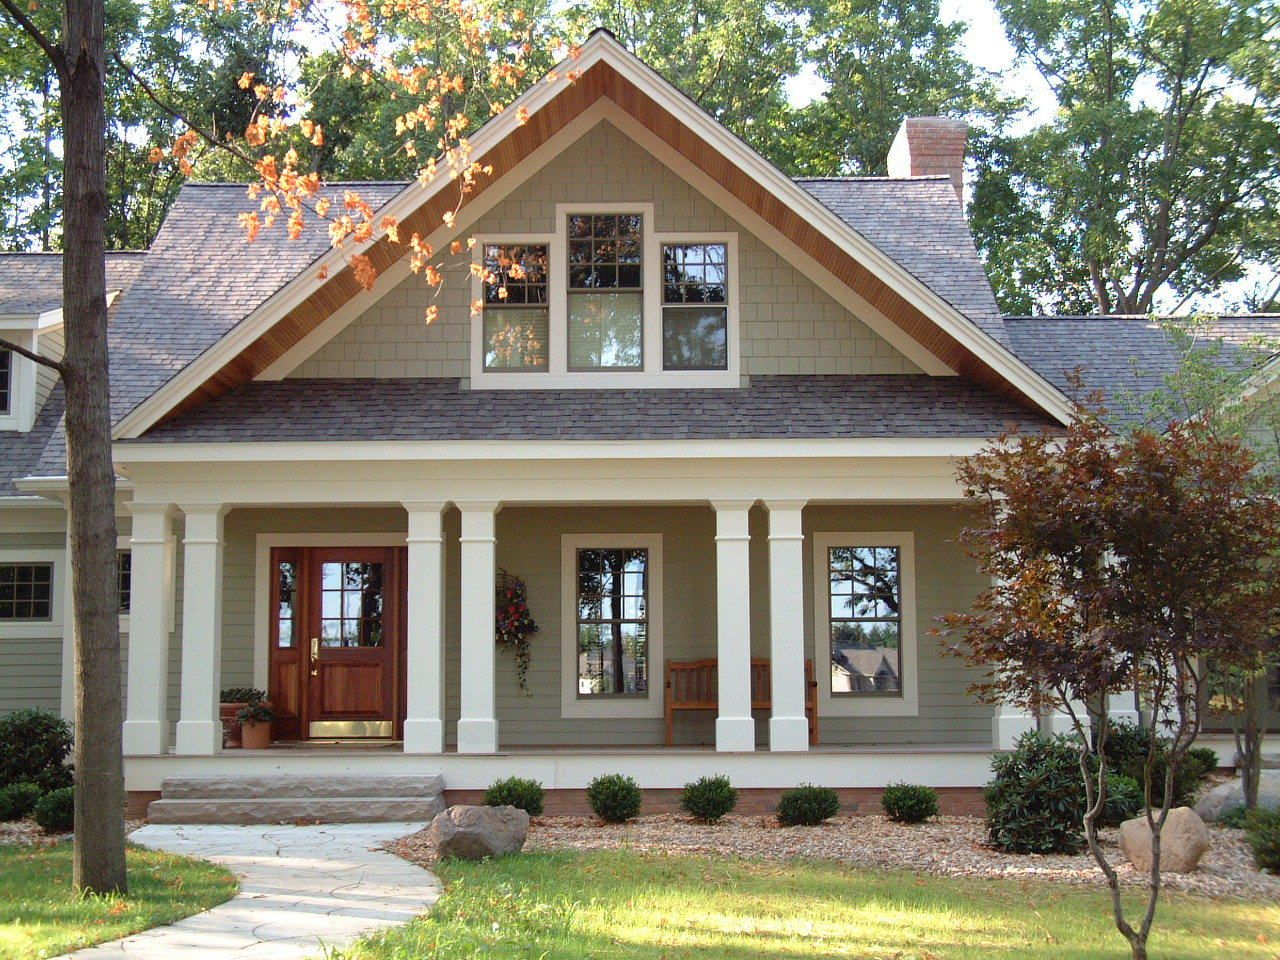 New custom home shingle style craftsman style house plan front porch st charles il 60174 - Wooden vacation houses nature style ...